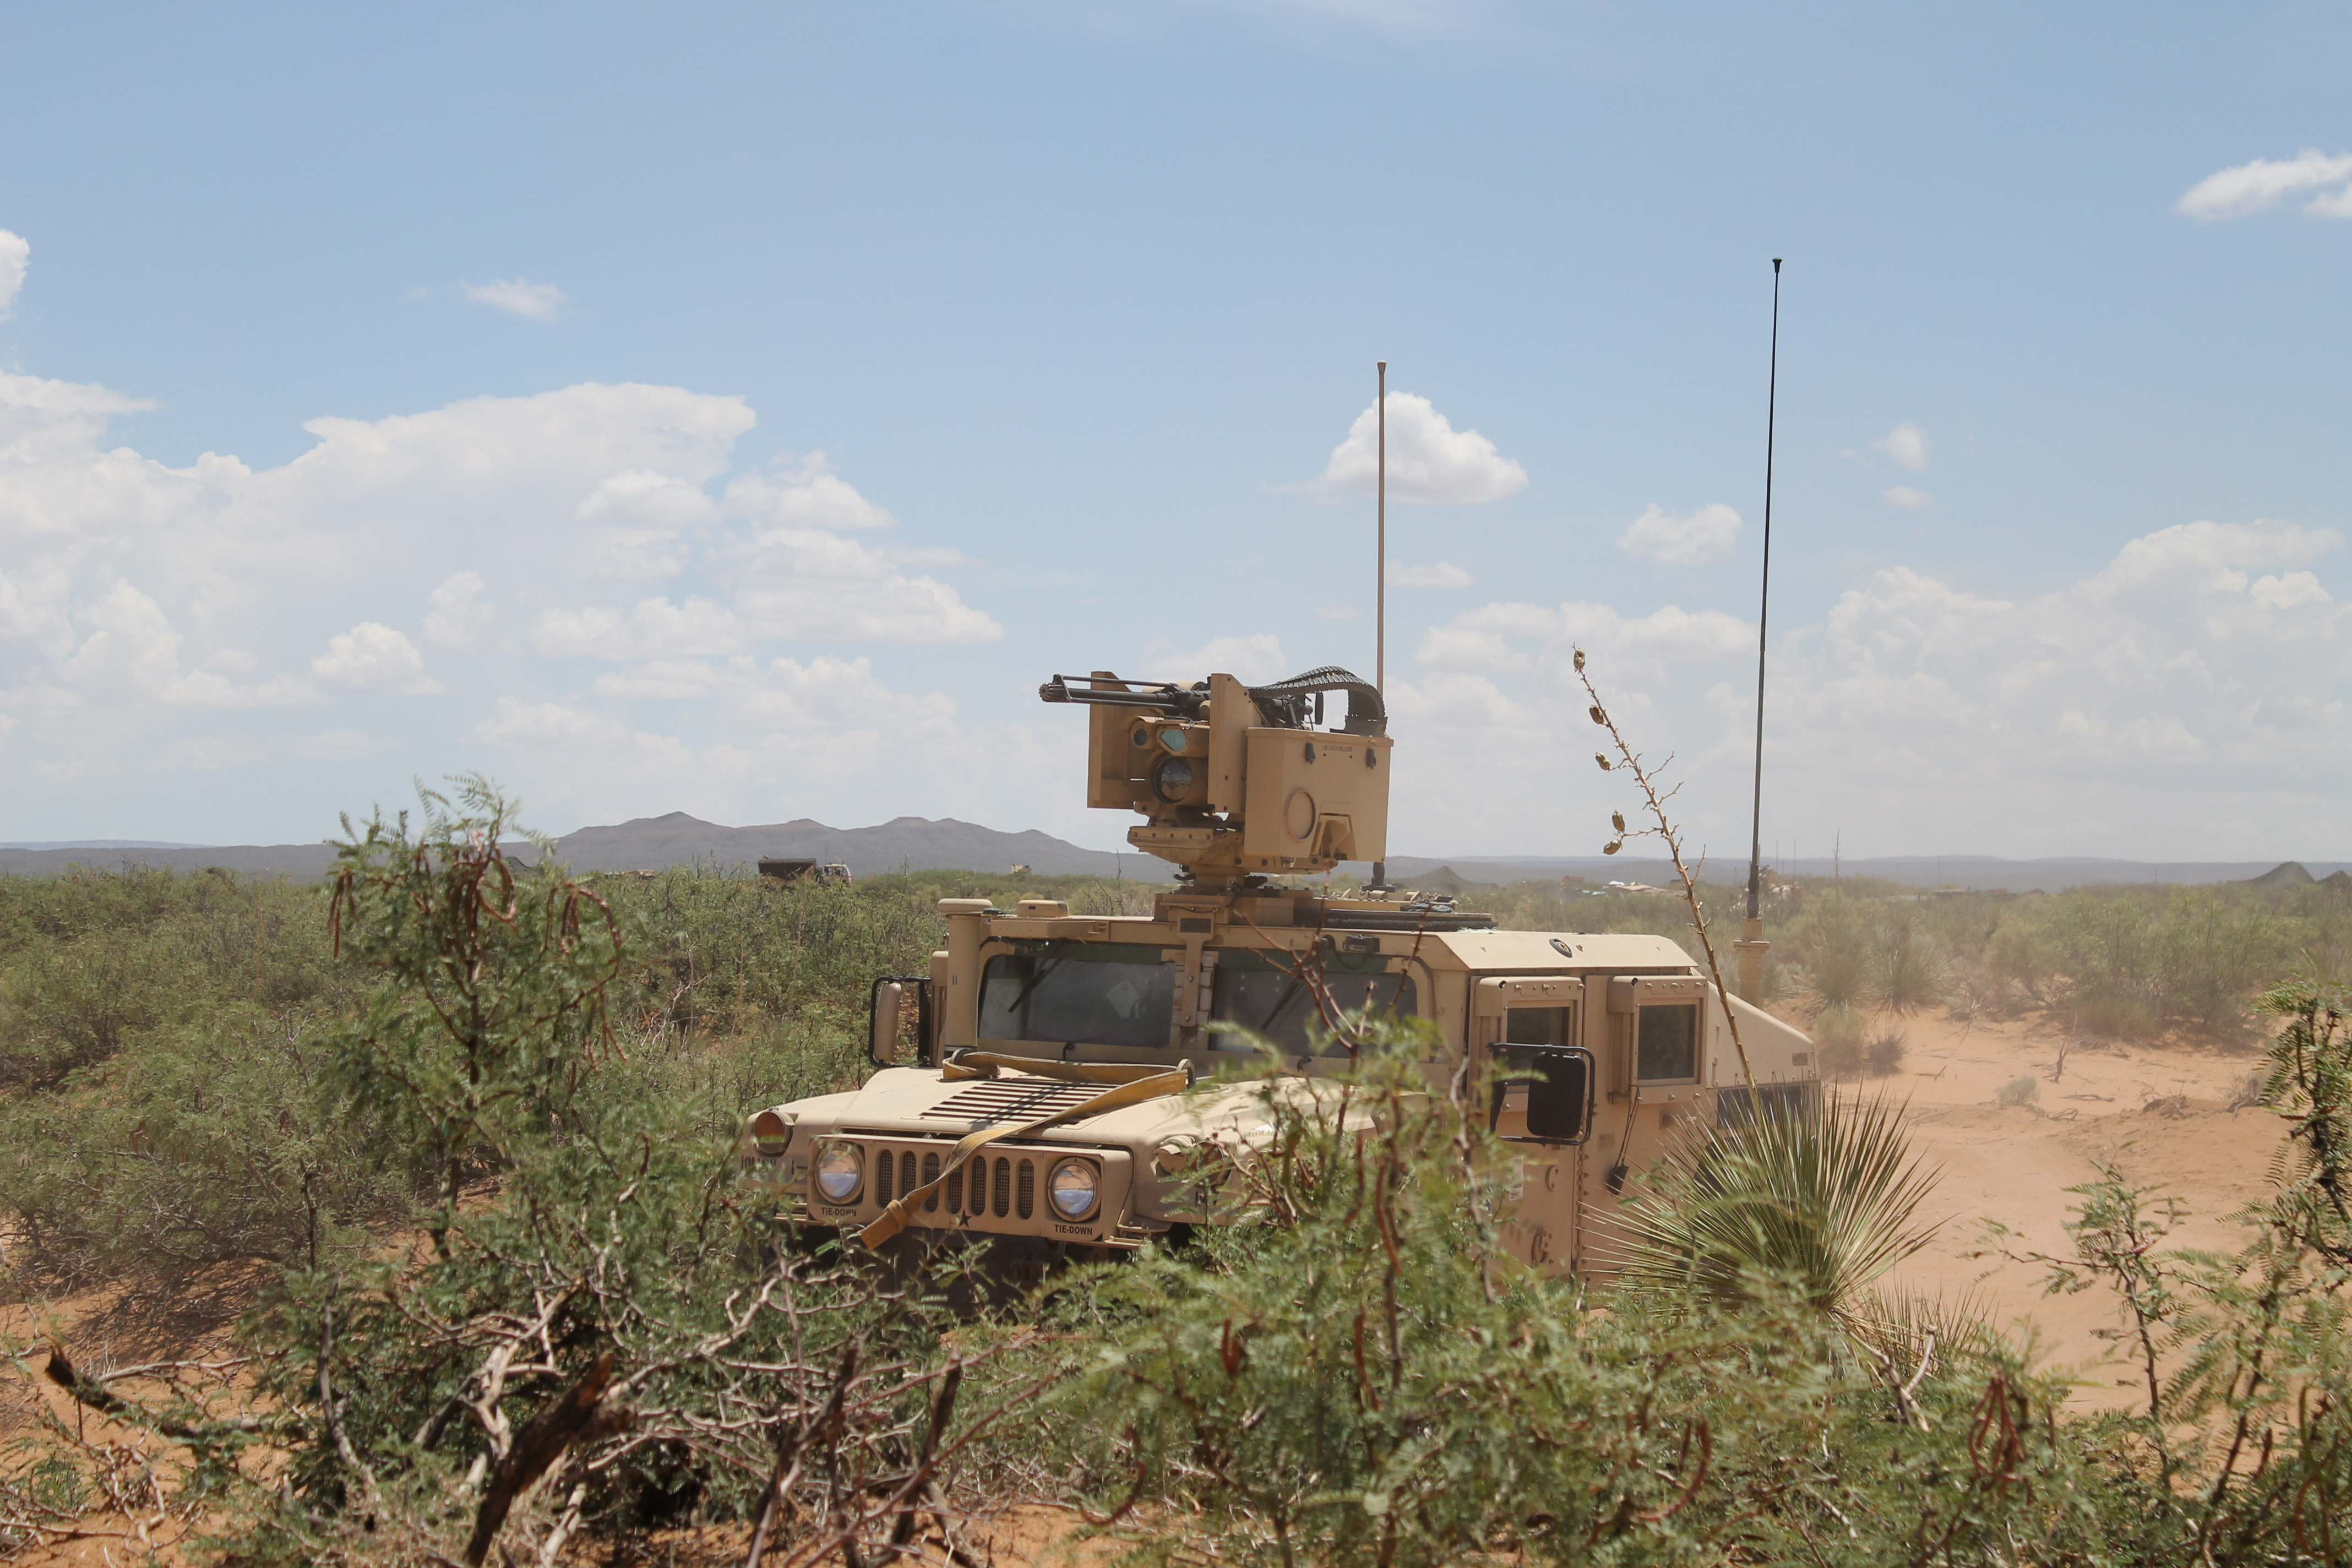 A Humvee moves position out at the NIE. Carter said he decided to put his Tactical Assault Centers (TACs) in a Humvee and move them every 15 minutes since the unit was constantly on the radio. The Humvees would be moved a few hundred meters in every direction in order to avoid location detection by the enemy, a survivability strategy in a peer and near-peer environment. (Jen Judson/Staff)